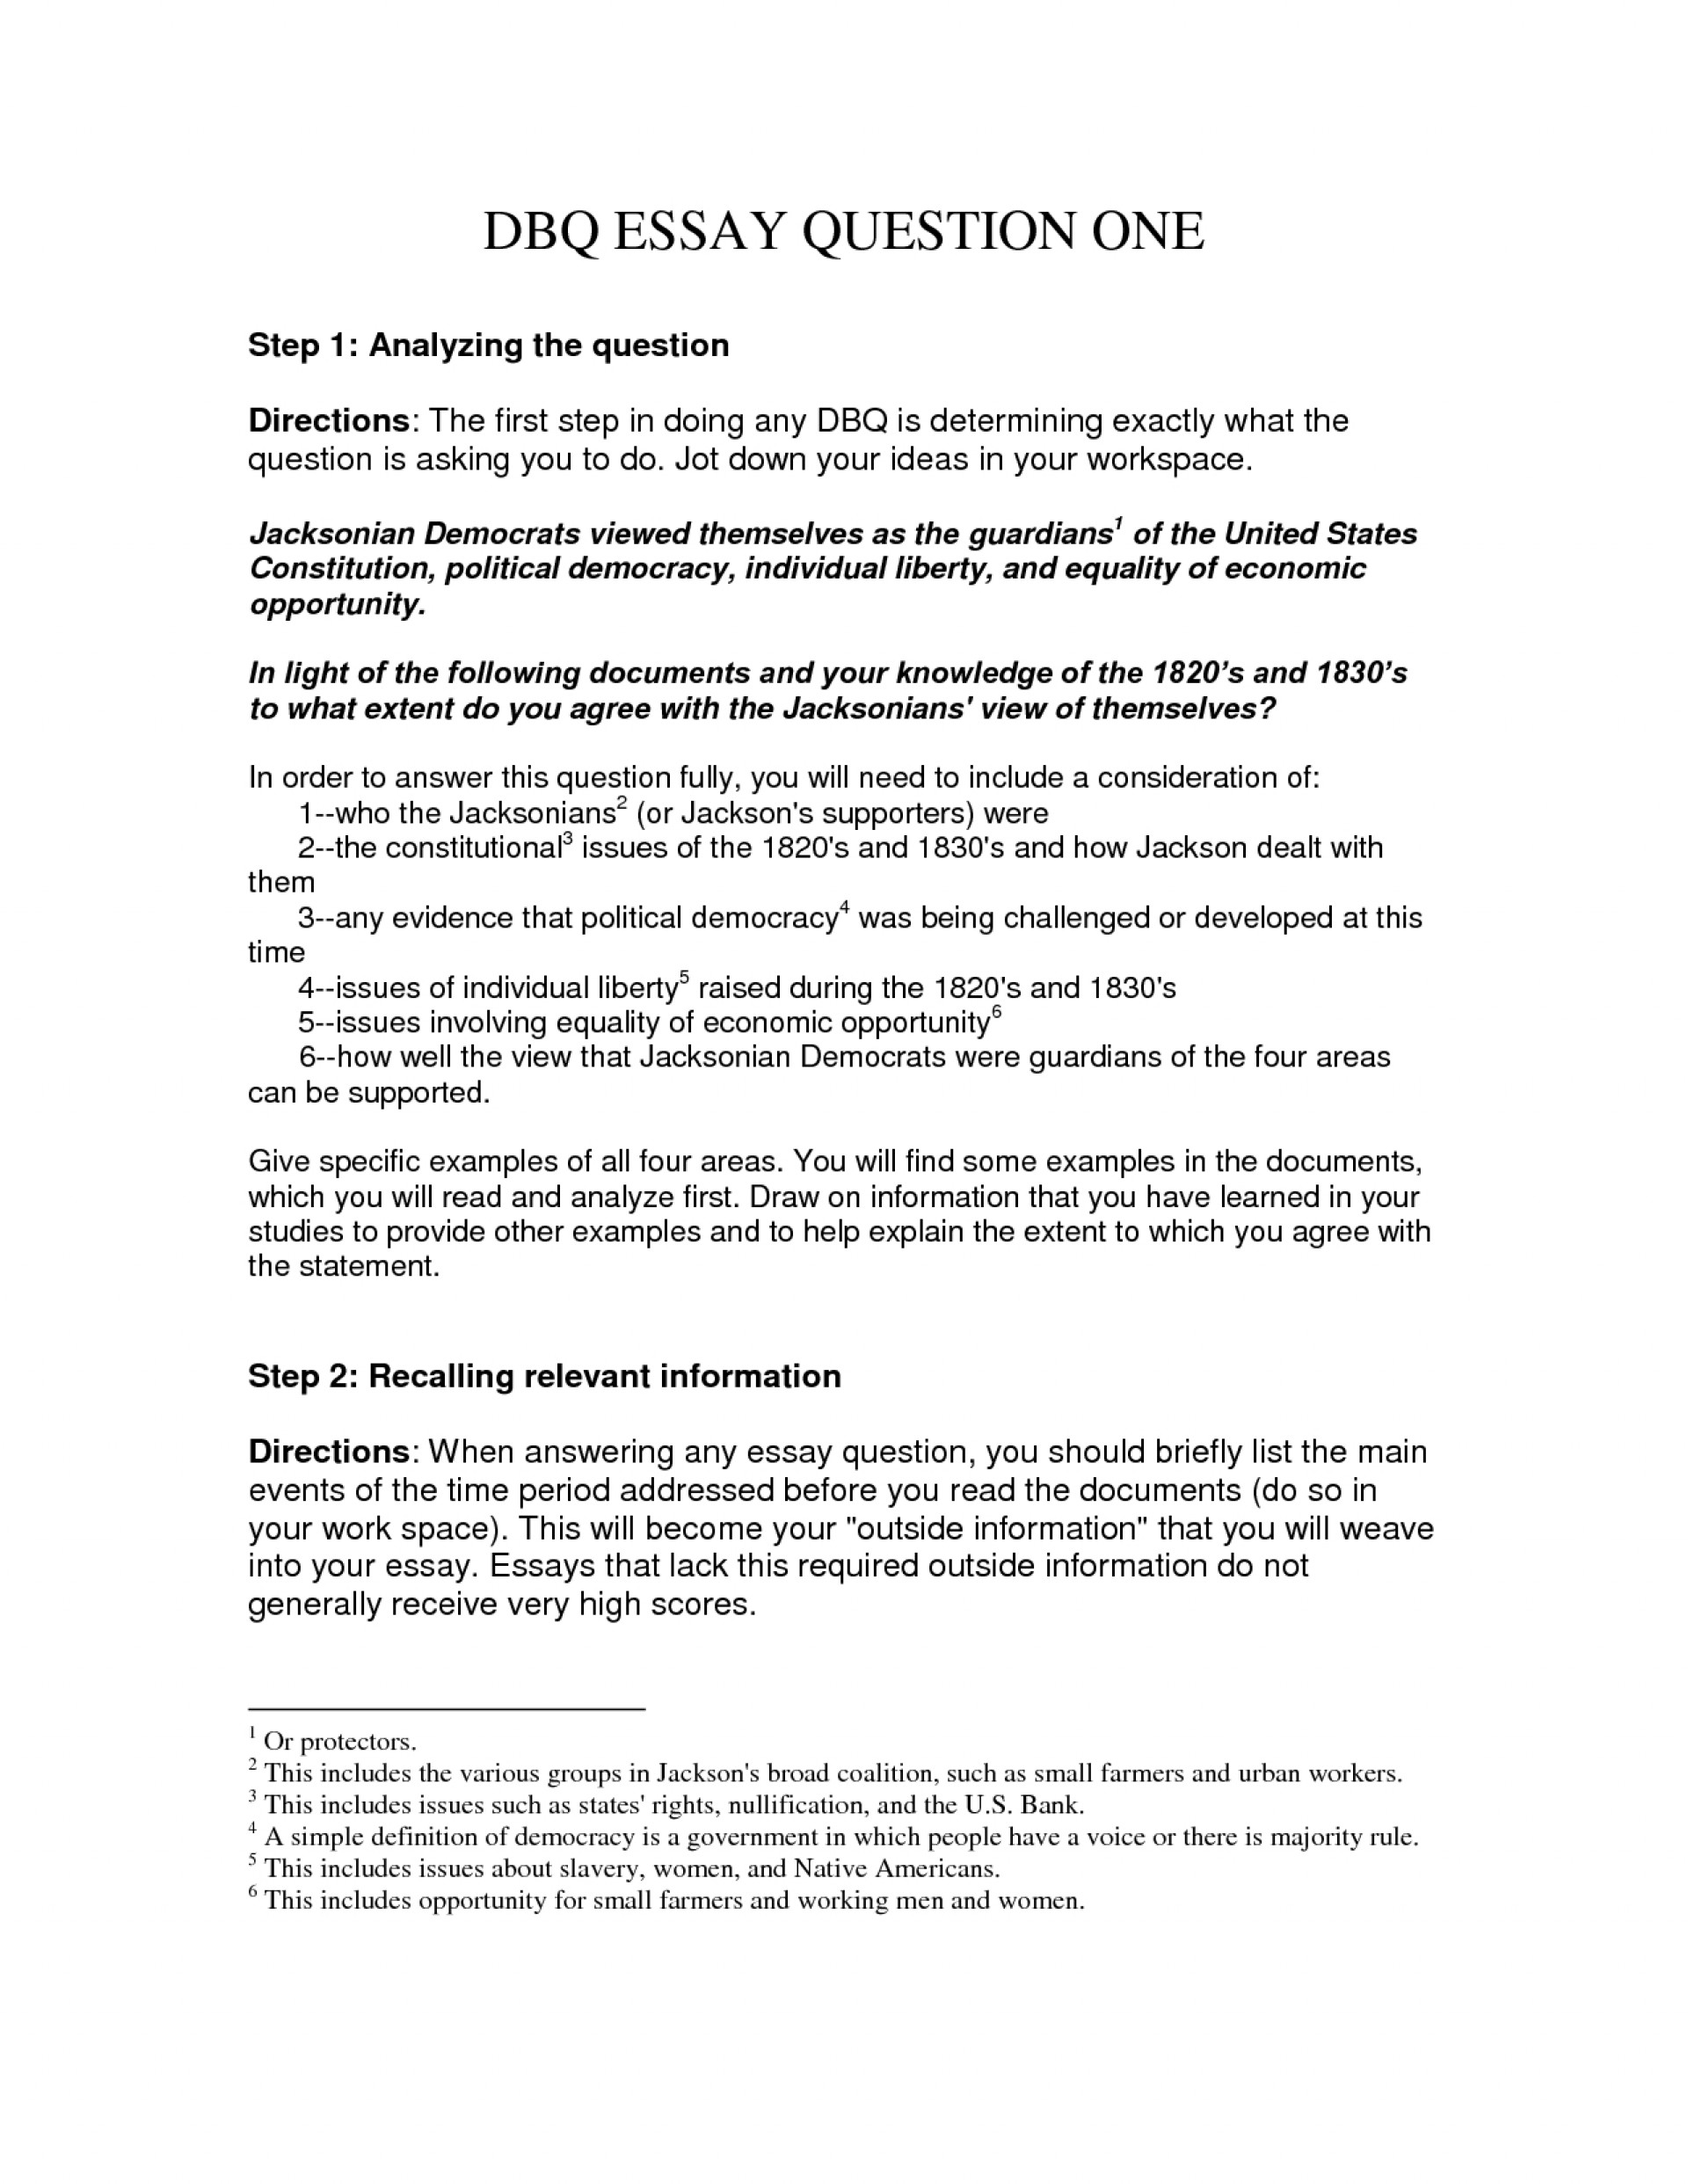 012 Essay Example Dbq Question One Answering Questions In Unforgettable Format Apa Multiple 1920